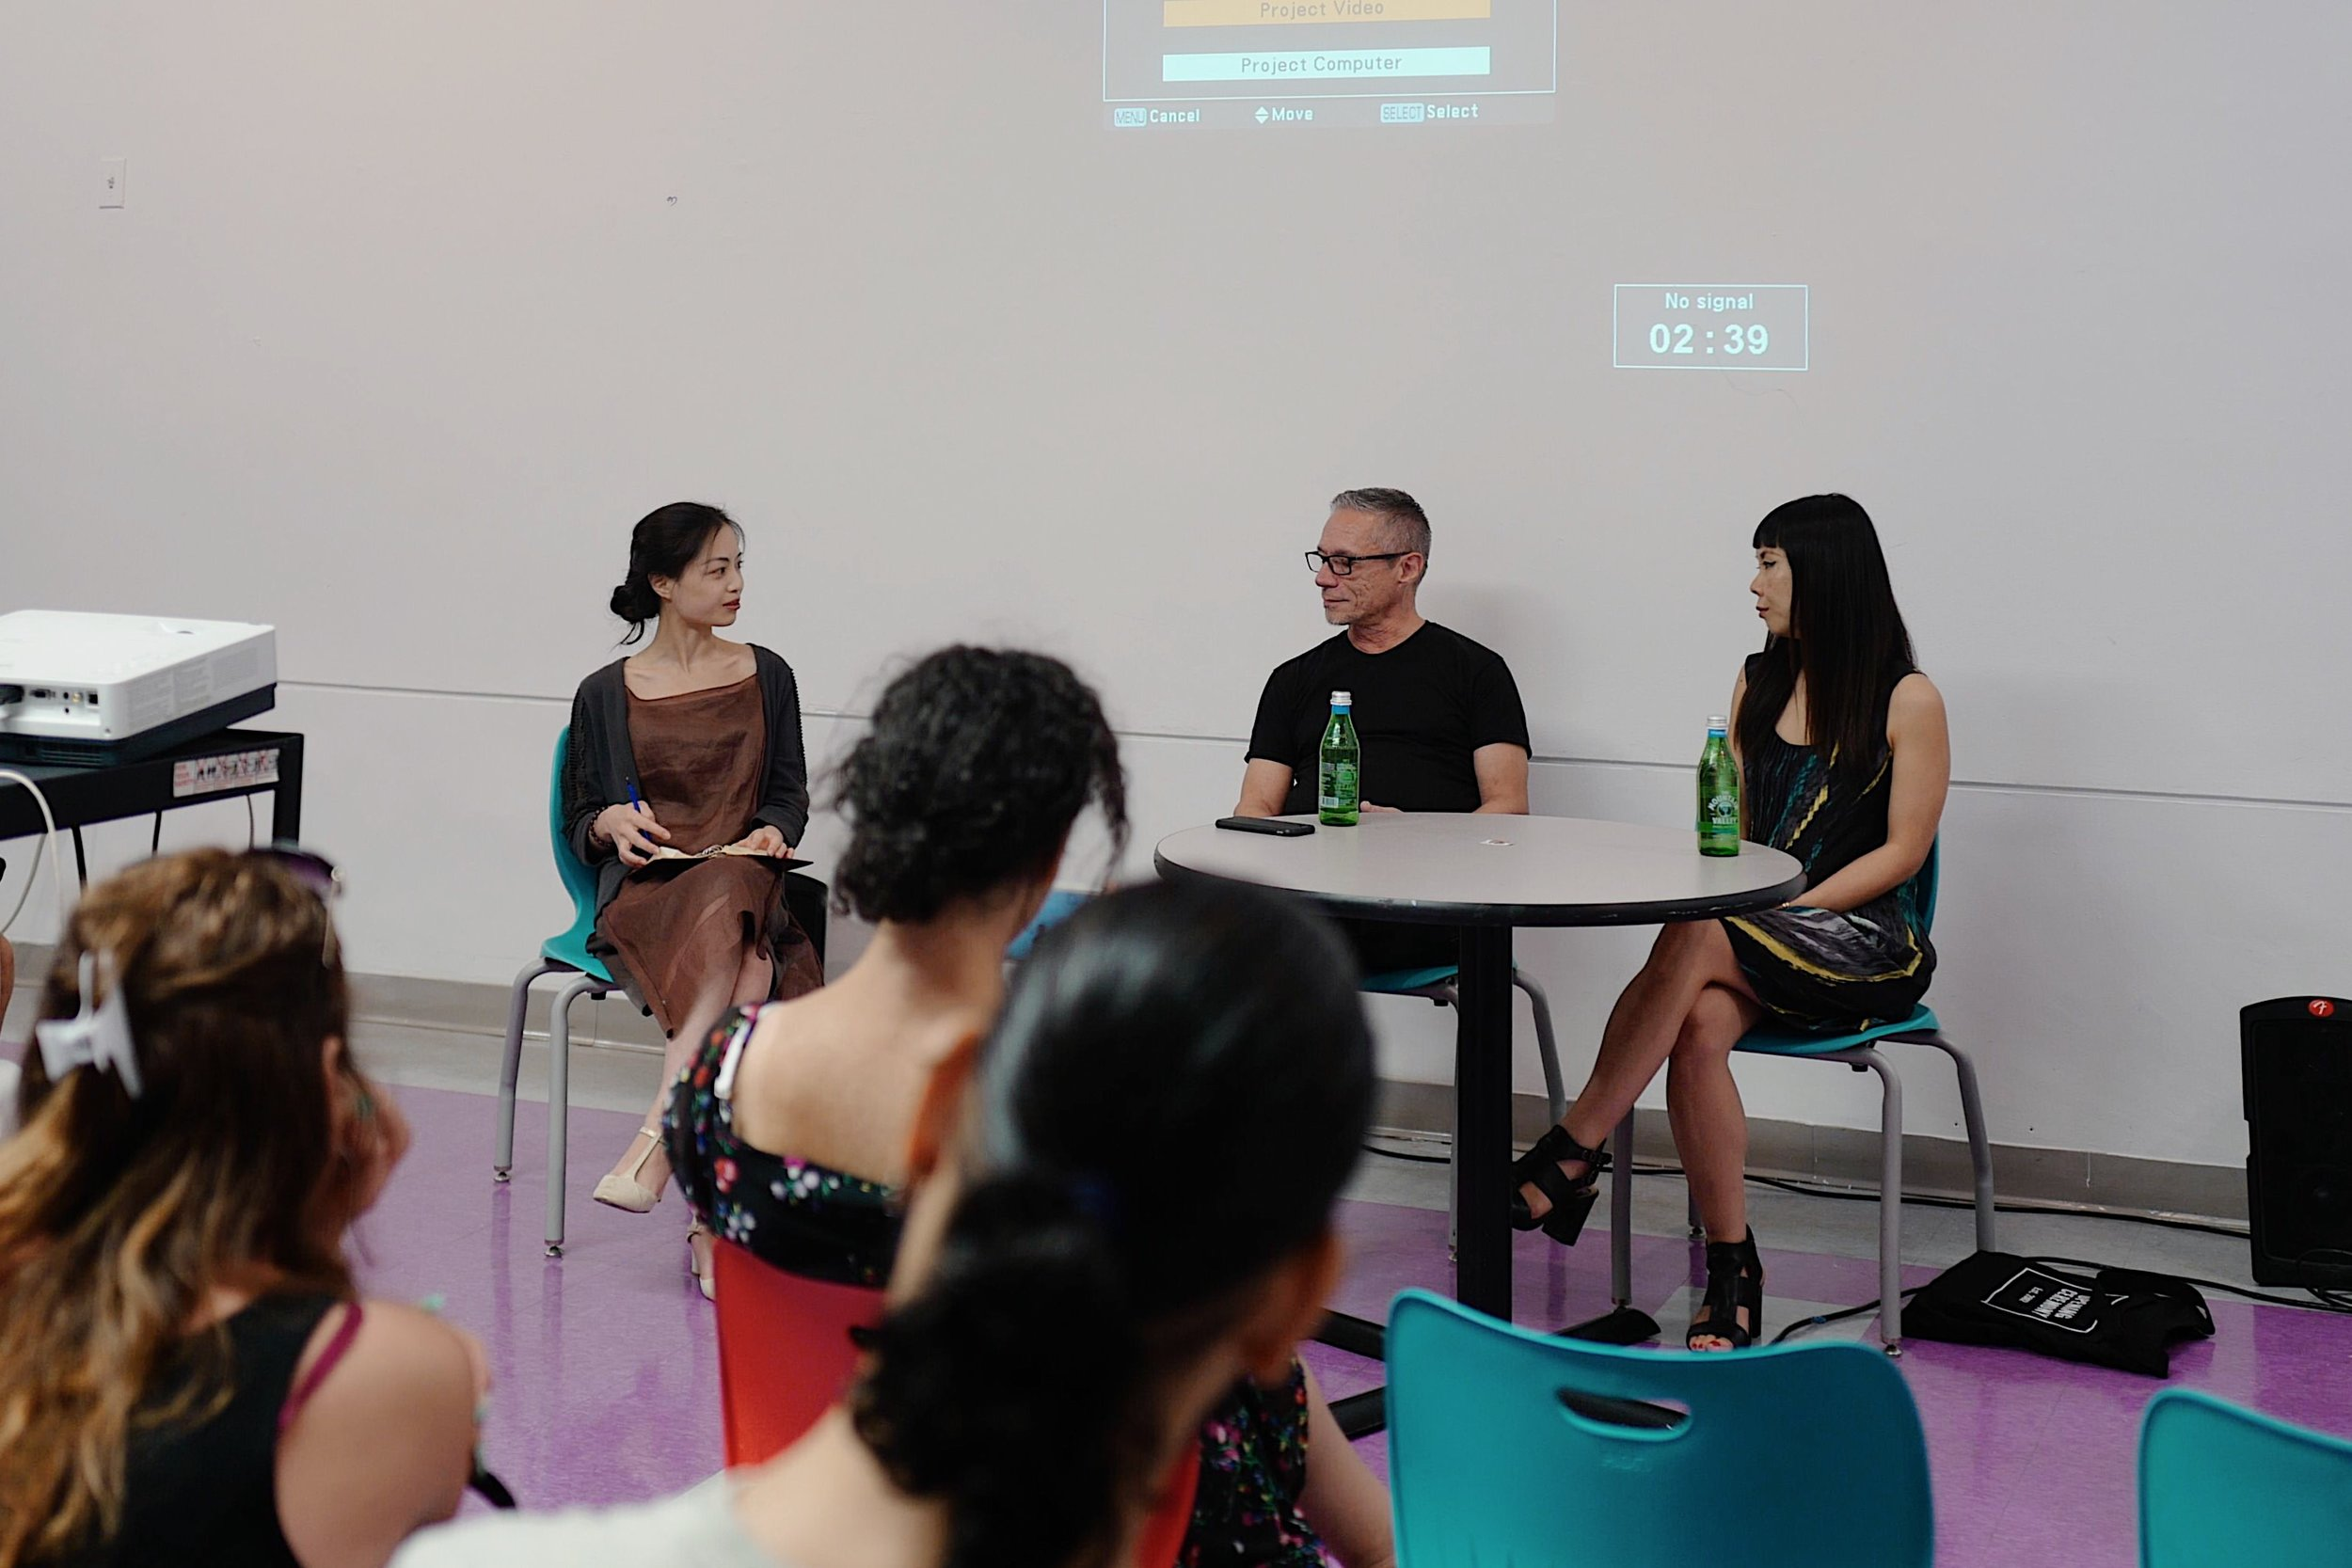 Curatorial director Irina Li moderating the panel discussion with street artists CoCo 144 and Lady Aiko.